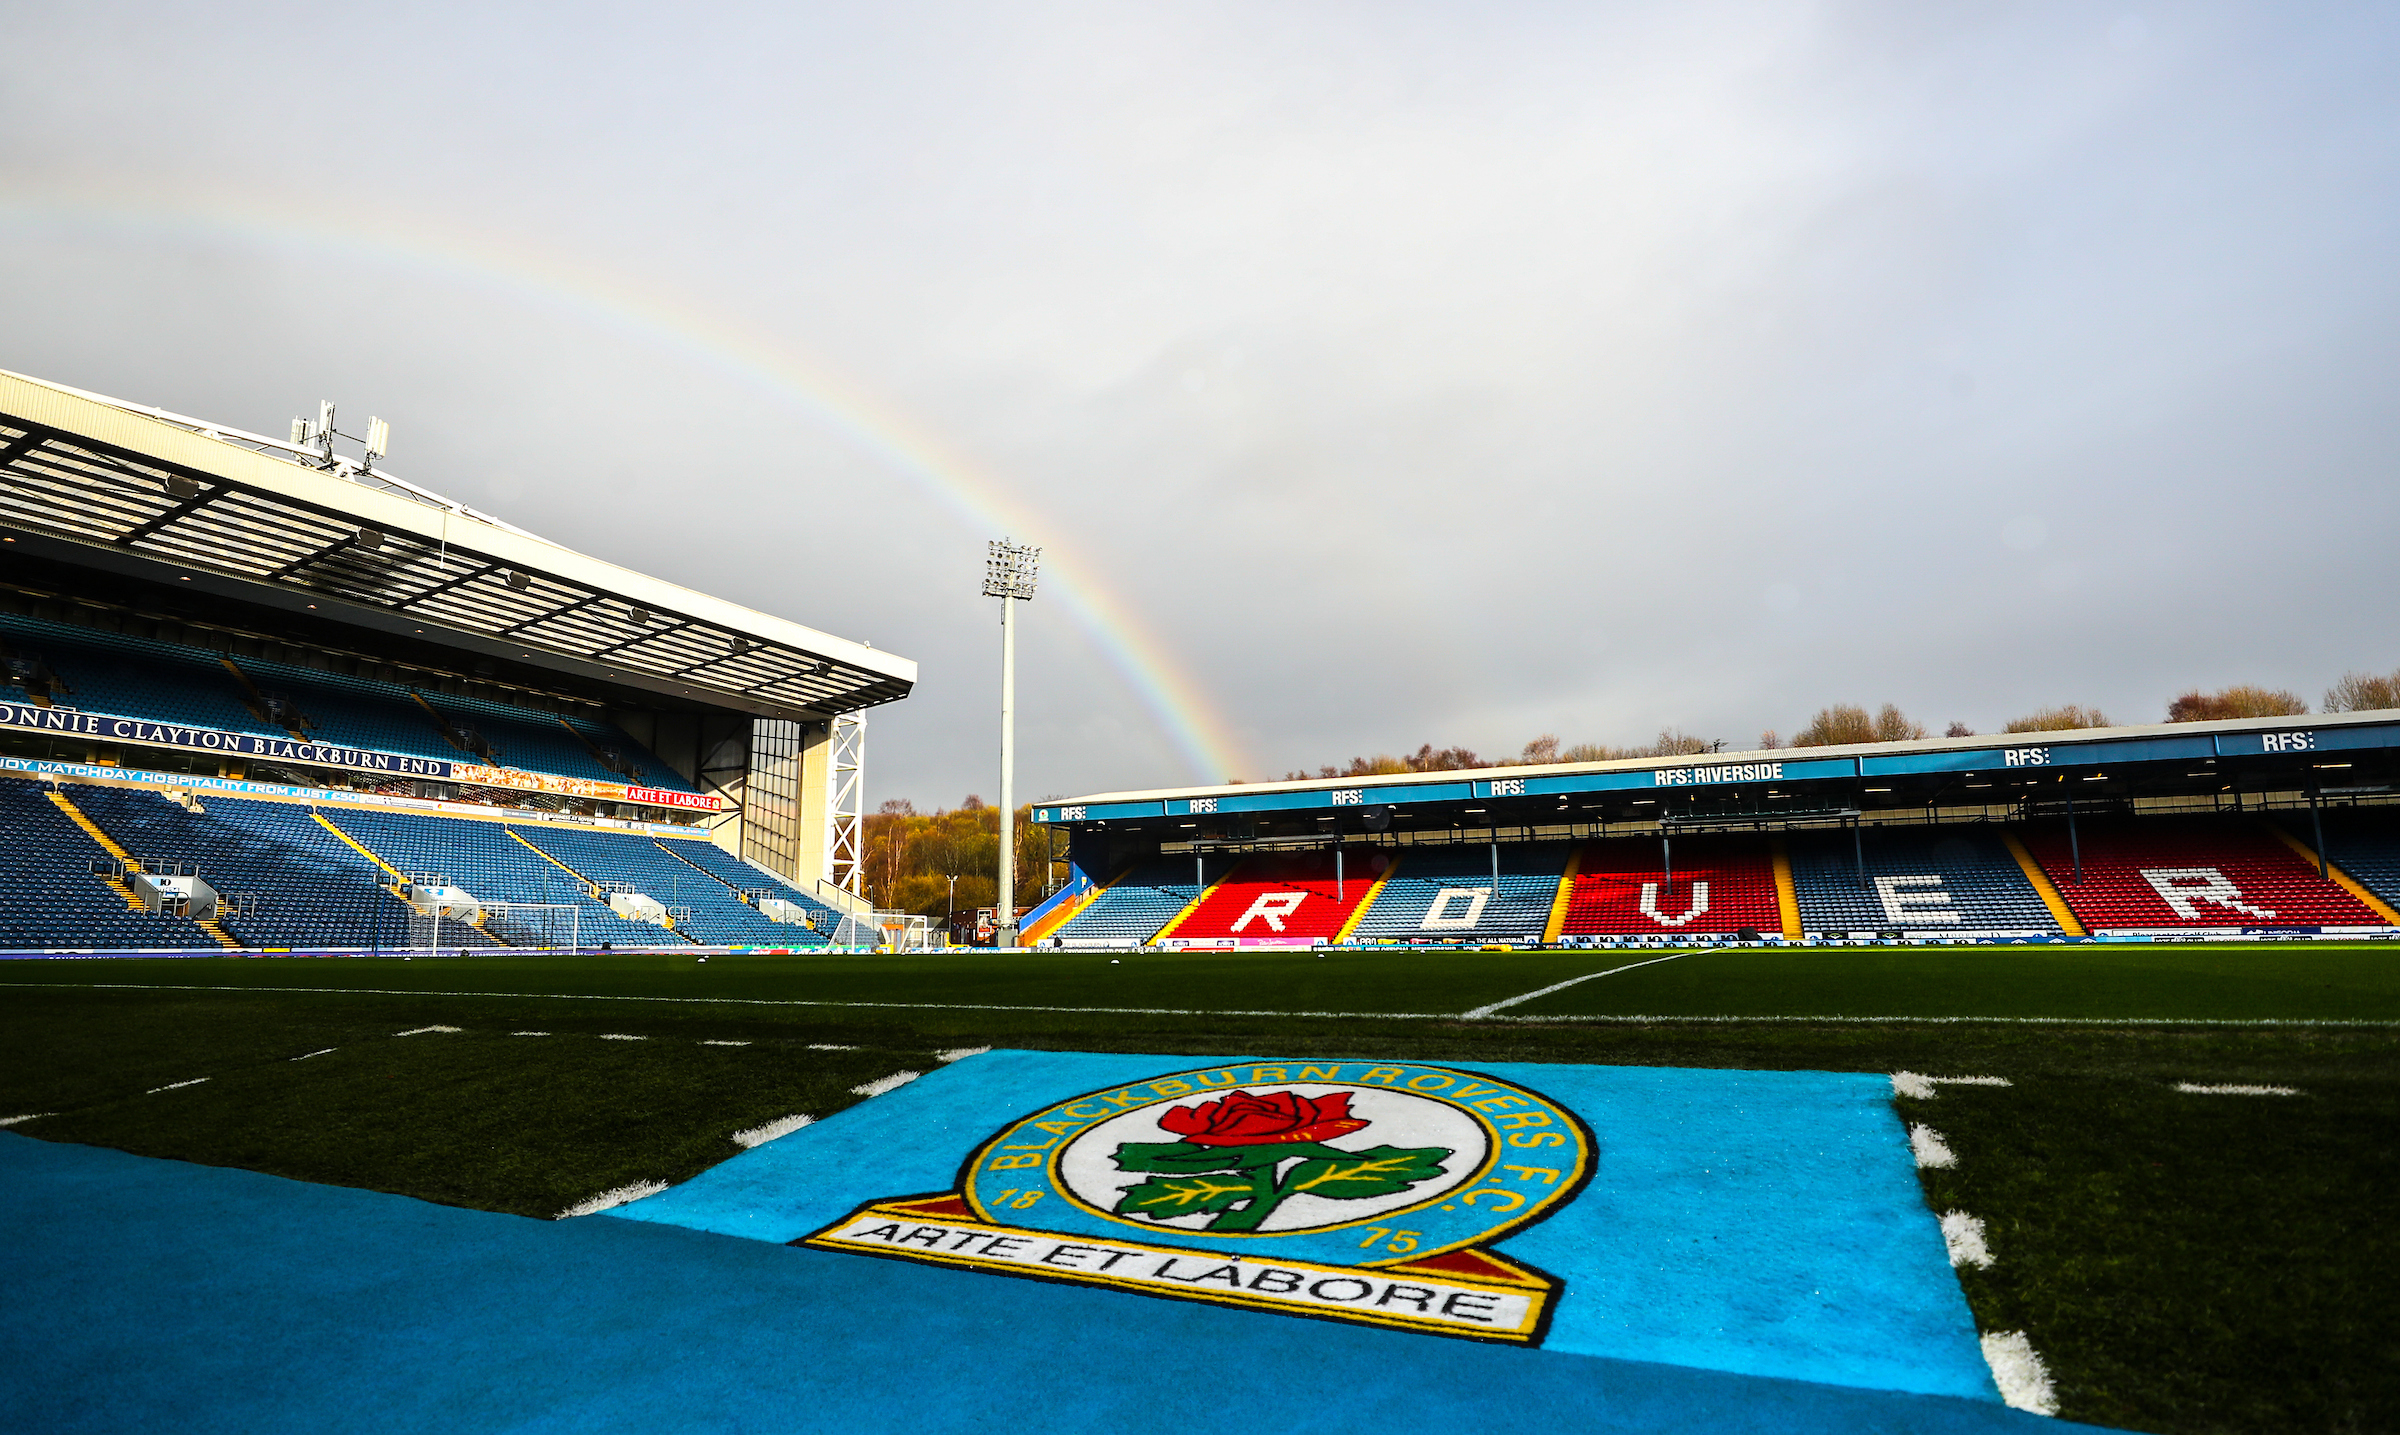 Rovers reduce ticket prices for Norwich City home game | Football